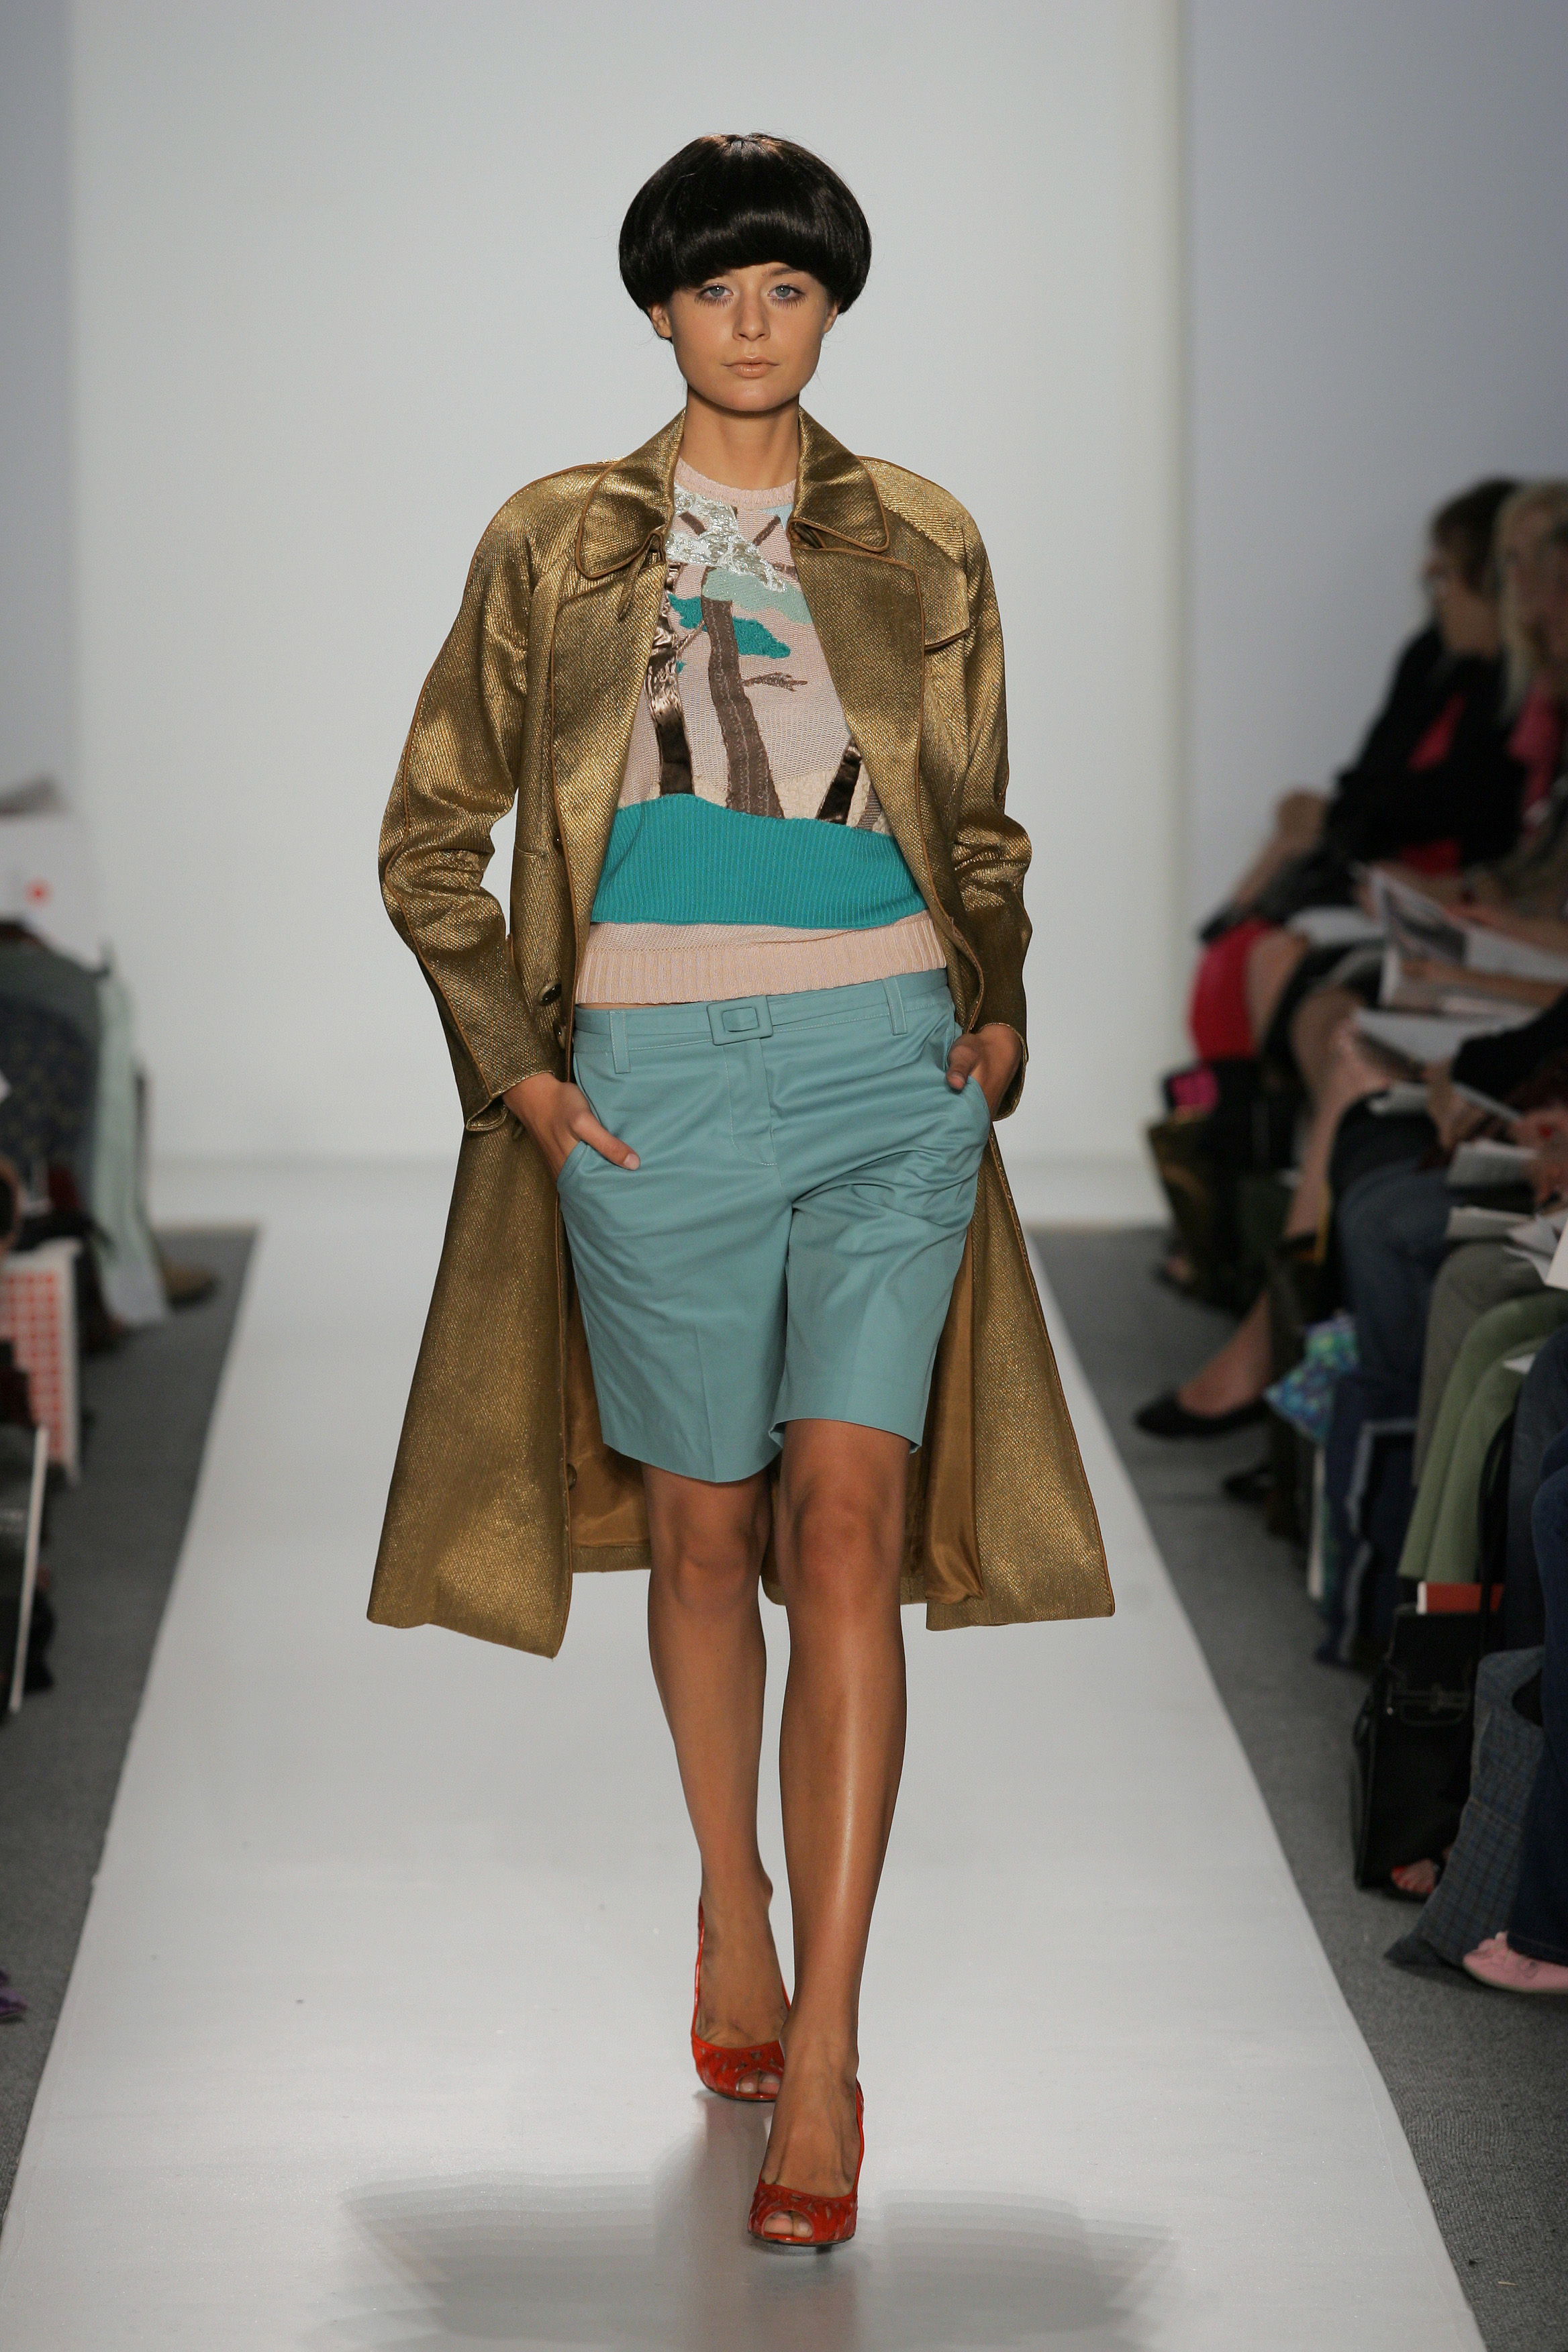 A look from alumni Jie Jessie Liu and Tanja Milutinovic's collaborative collection at the School of Fashion's NYFW show in September 2012. Photo by Getty Photos.